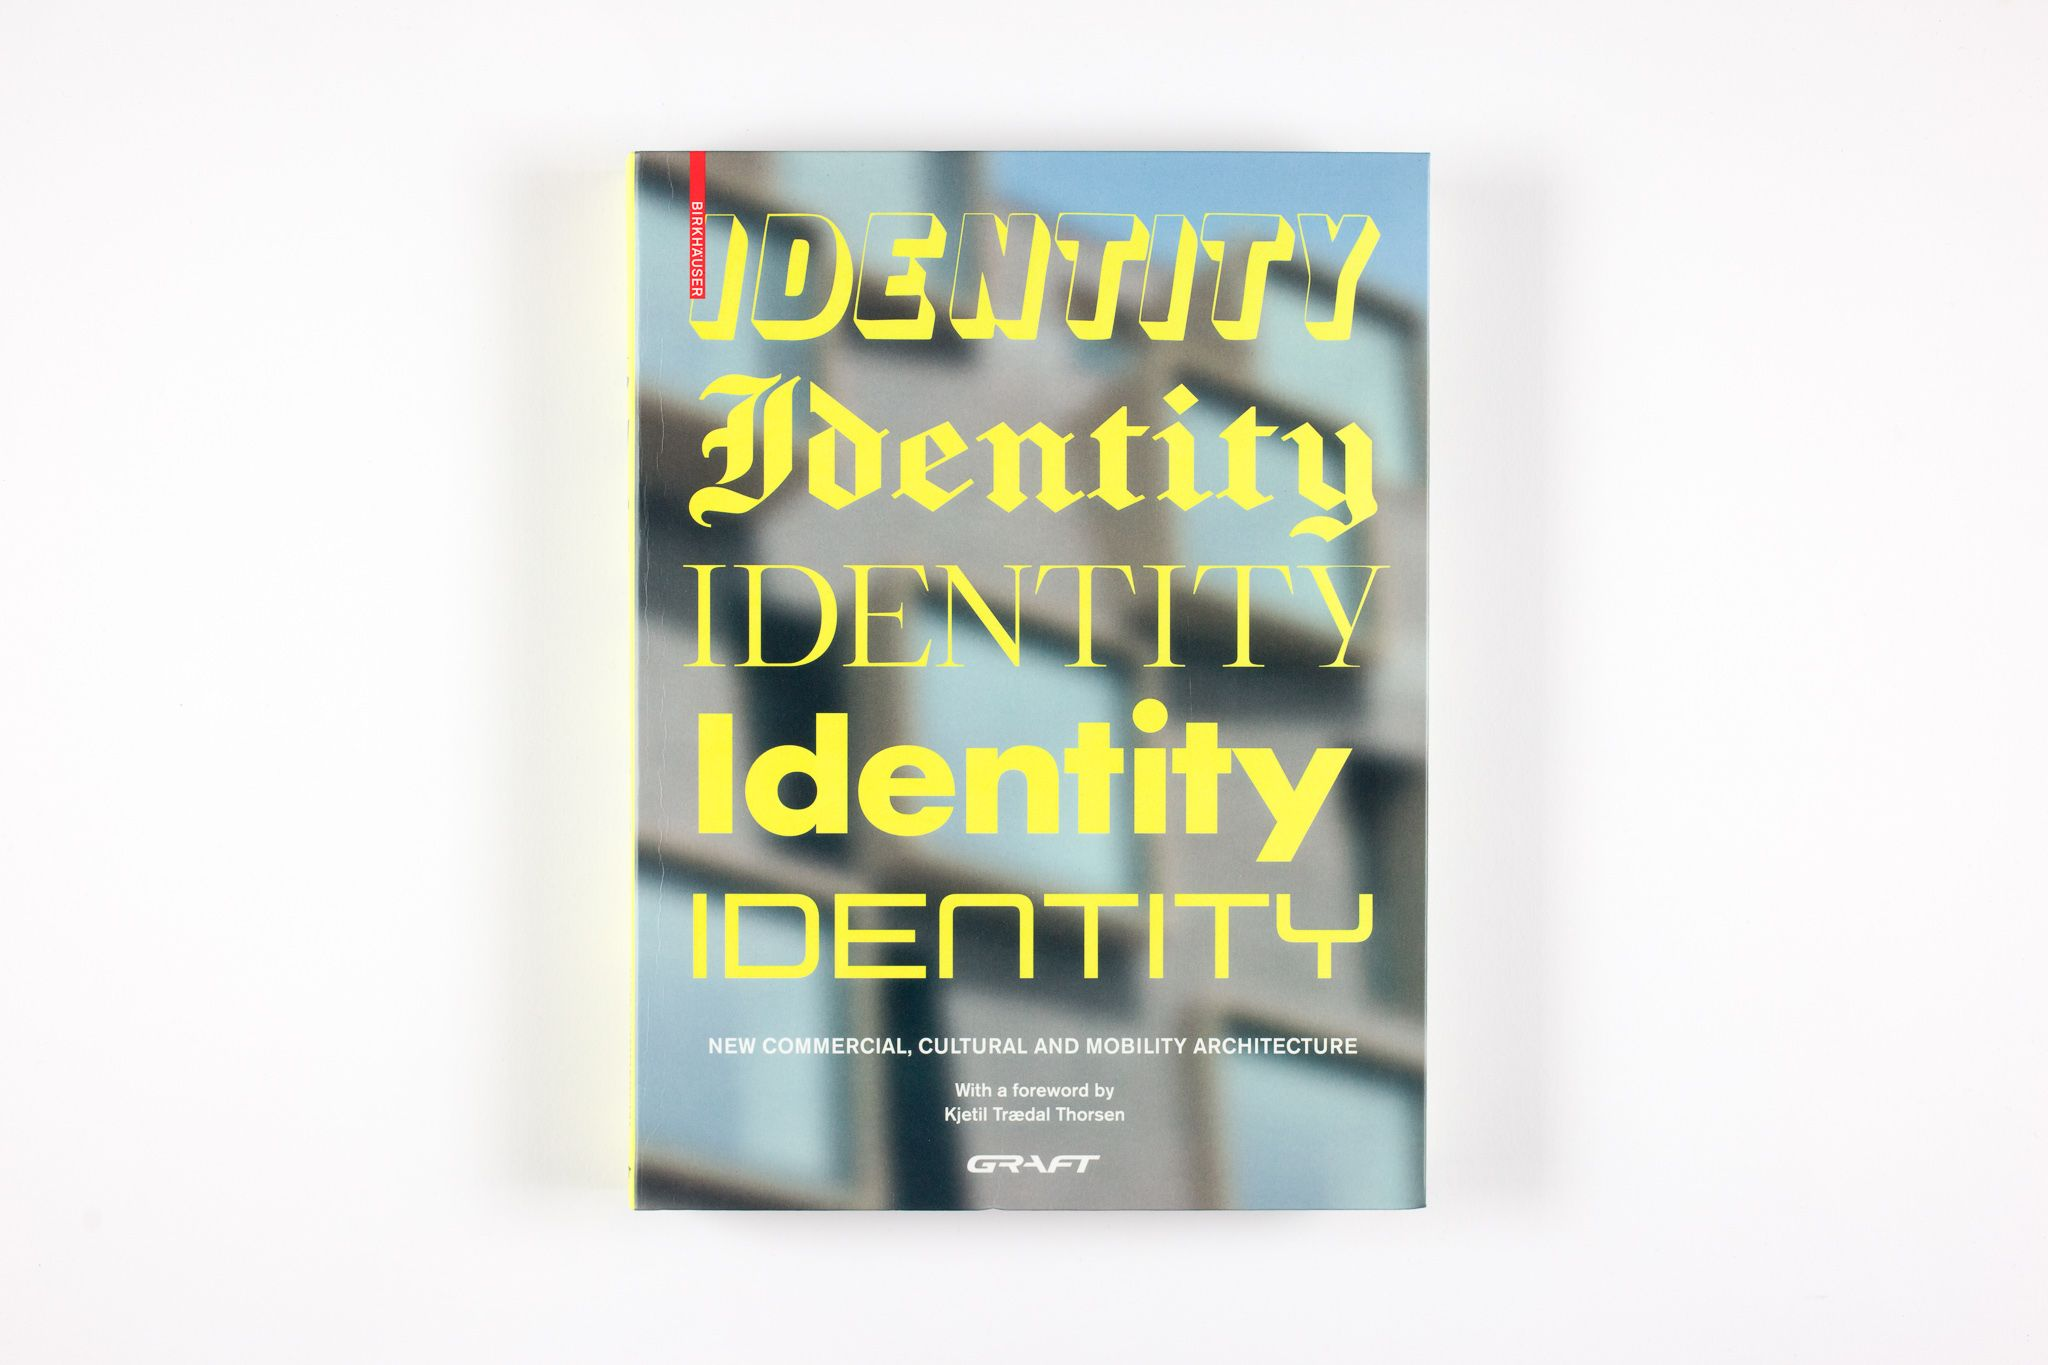 "IDENTITY. New Commercial, Cultural and Mobility Architecture Author		GRAFT Project type	Publication Language	English Publisher	Birkhäuser  Paperback	360 pages Published	October 12, 2020  ISBN-10	3035619166 ISBN-13	978-3035619164   The international and multidisciplinary practice GRAFT conceives of itself as a label for architecture, urban design, product design, and music. GRAFT calls itself a ""hybrid office"" and produces dynamic architectural designs for standard commissions; however, the architects also initiate their own projects and system solutions for tasks with a social, ecological, or esthetic emphasis."